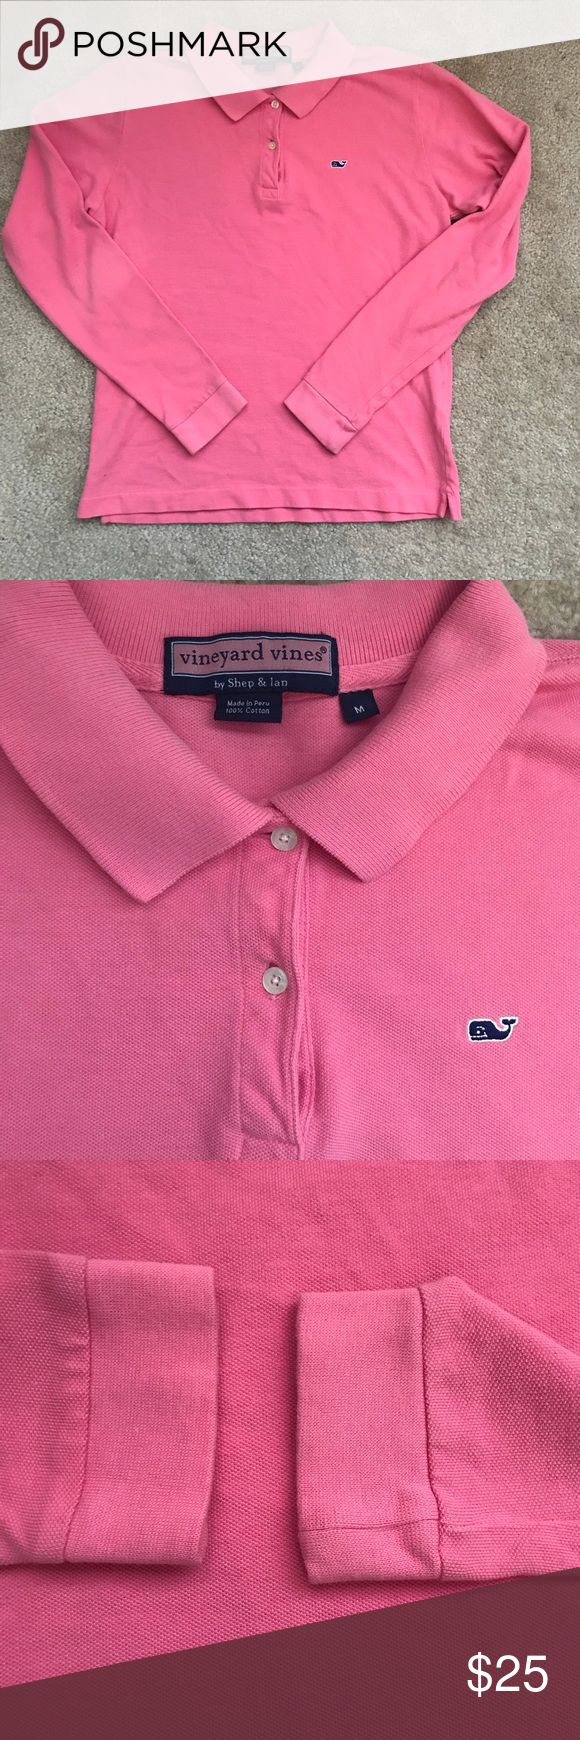 "Vineyard Vine's long sleeve polo shirt Vineyard Vine's long sleeve salmon pink polo shirt. Overall great condition, one small spot on the back of the arm, close to your elbow as picture shows. 100% cotton. Approximately 23"" long, 18"" chest, and 23.5"" arm. Vineyard Vines Tops Tees - Long Sleeve"